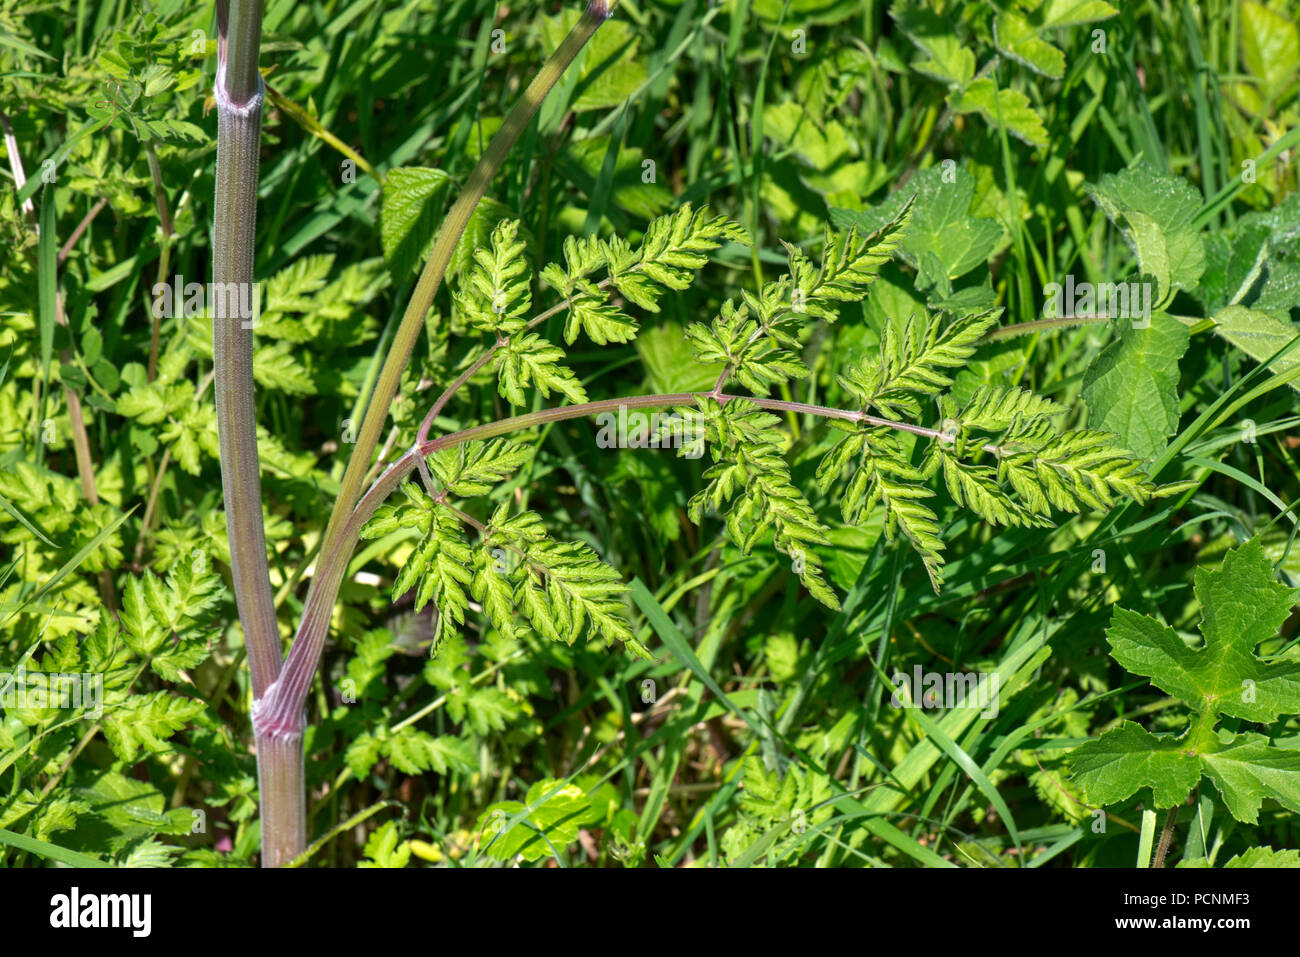 Cow parsley, Anthriscus sylvestris, foliage, green, fern-like, leaves on roadside verge, Berkshire, May - Stock Image